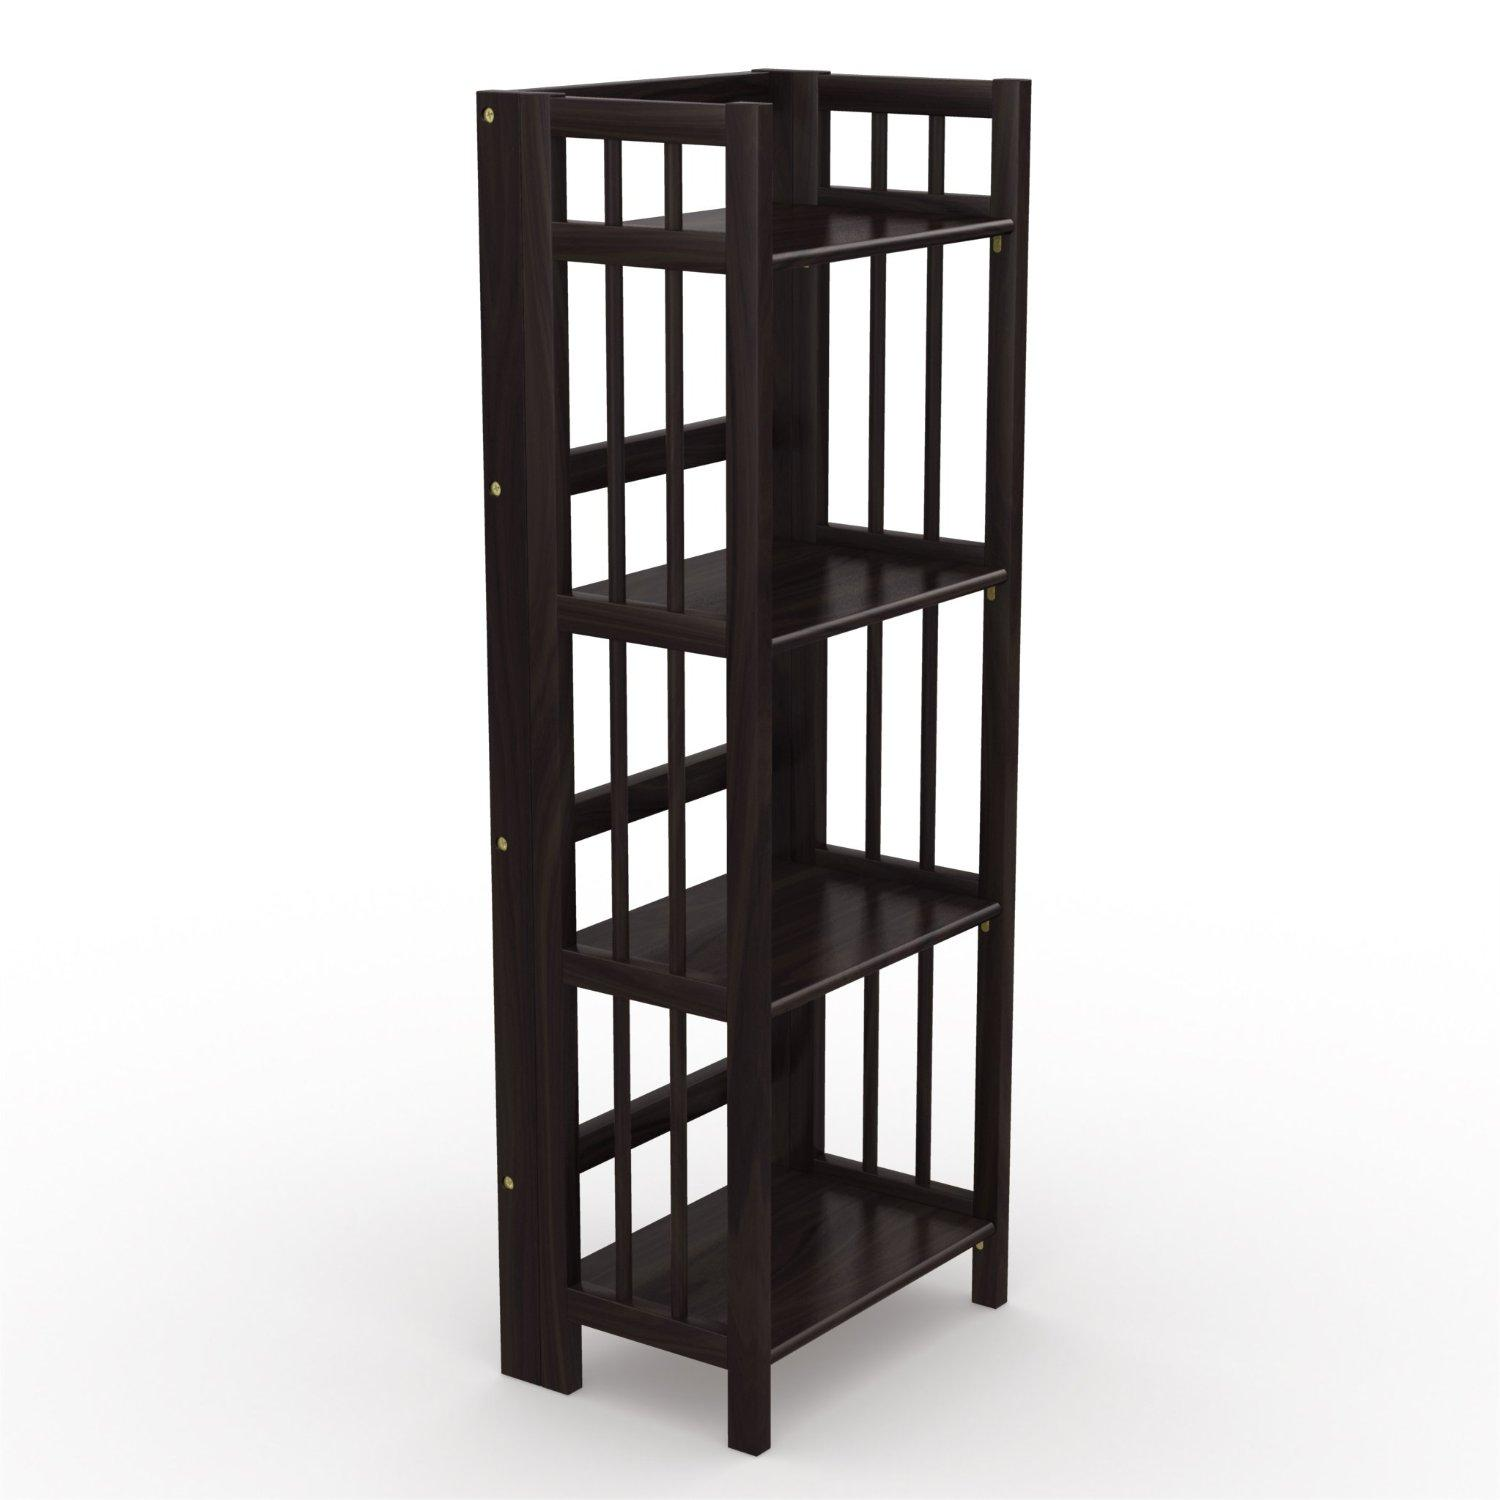 Folding bookcase cabinet storage home office furniture Folding bookshelf